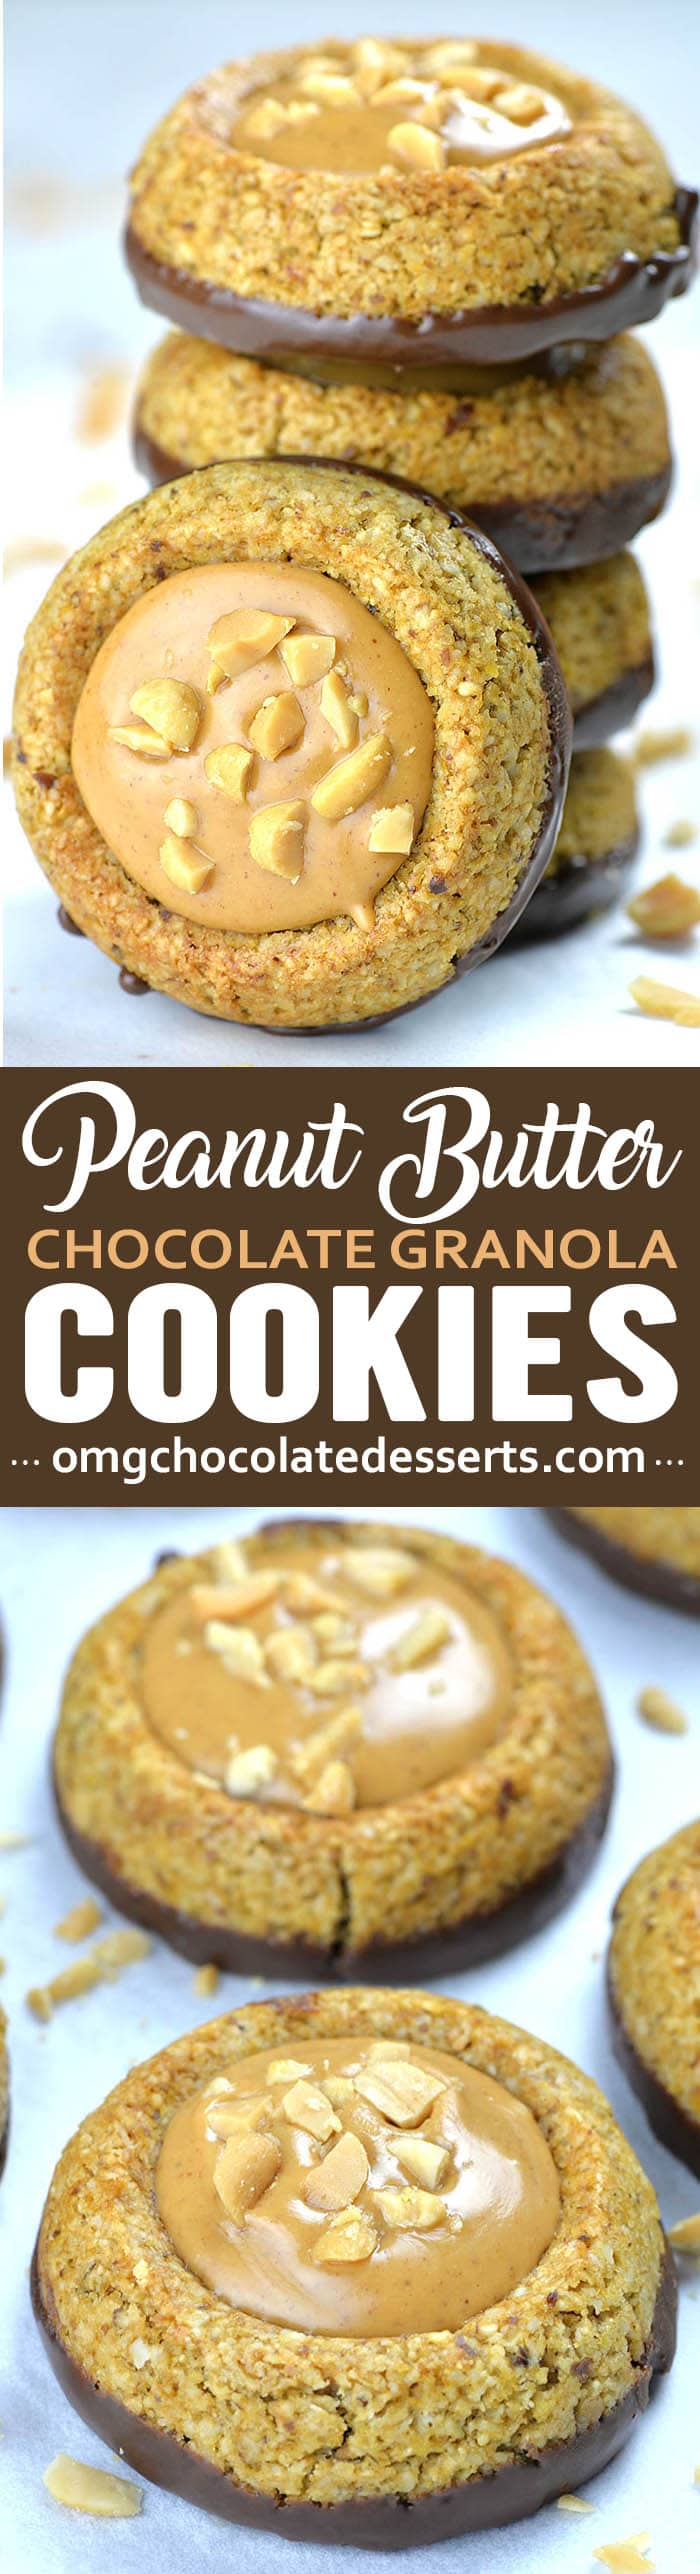 Two images of hocolate Peanut Butter Granola Cookies. First with bunch of cookies each on other and second with two cookies on white background.